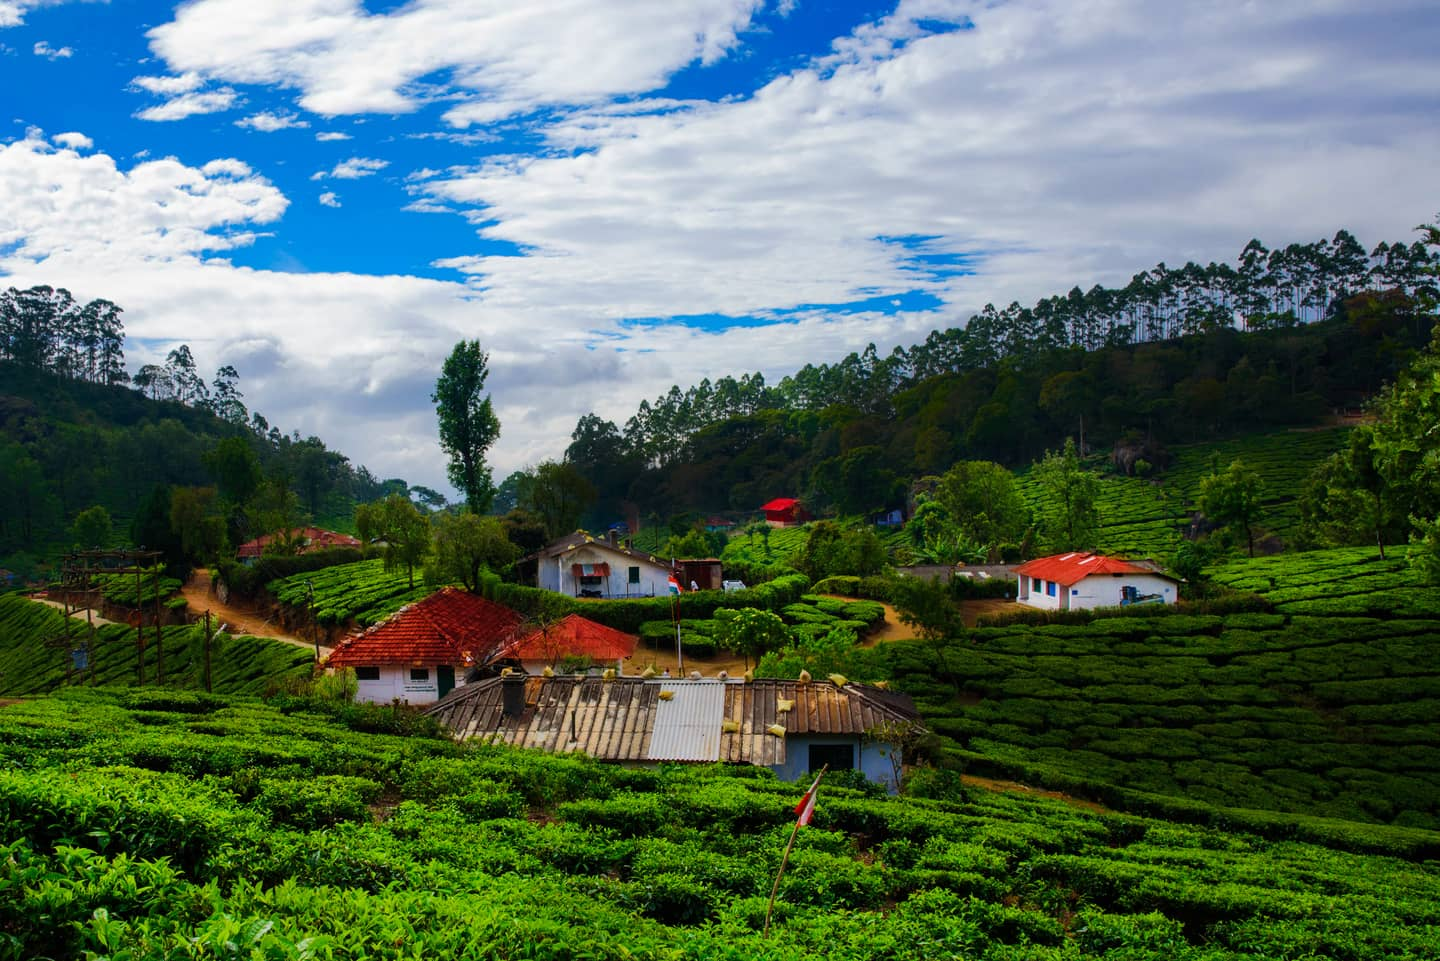 most-instagrammable-destinations-india-munnar-image